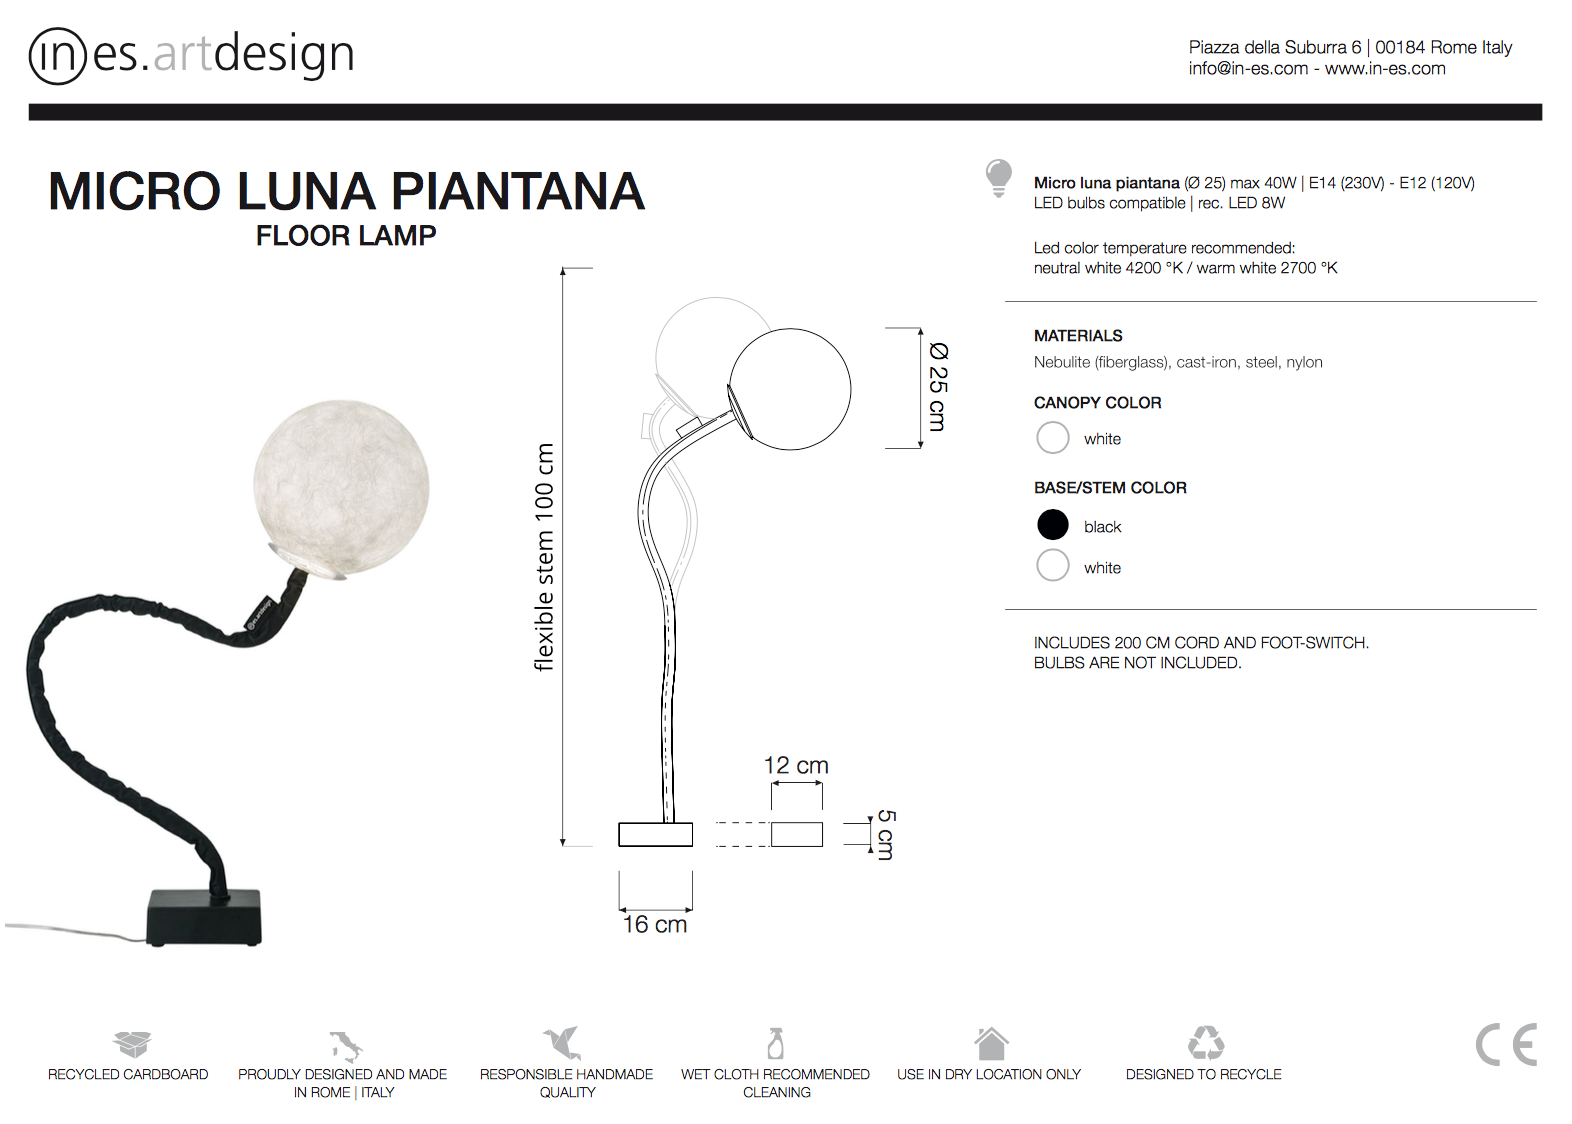 Micro Luna Piantana Floor Lamp In Es Art Design